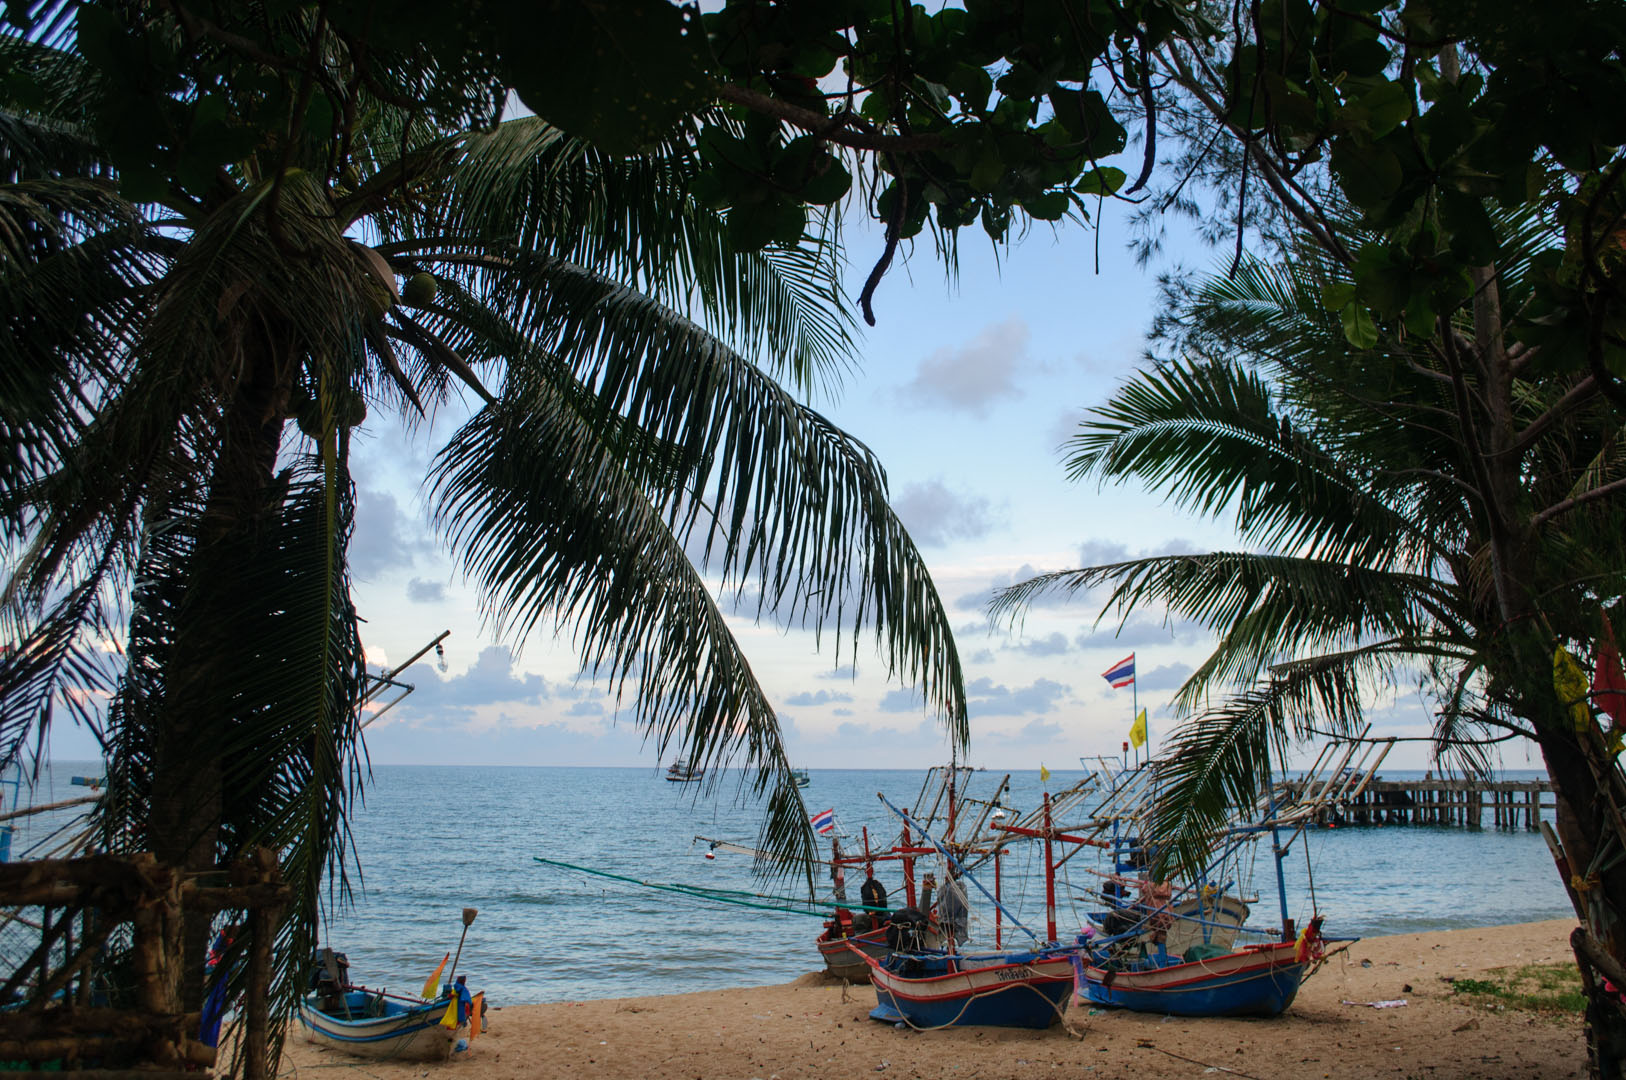 Thailand beach with palm trees and fishing boats.